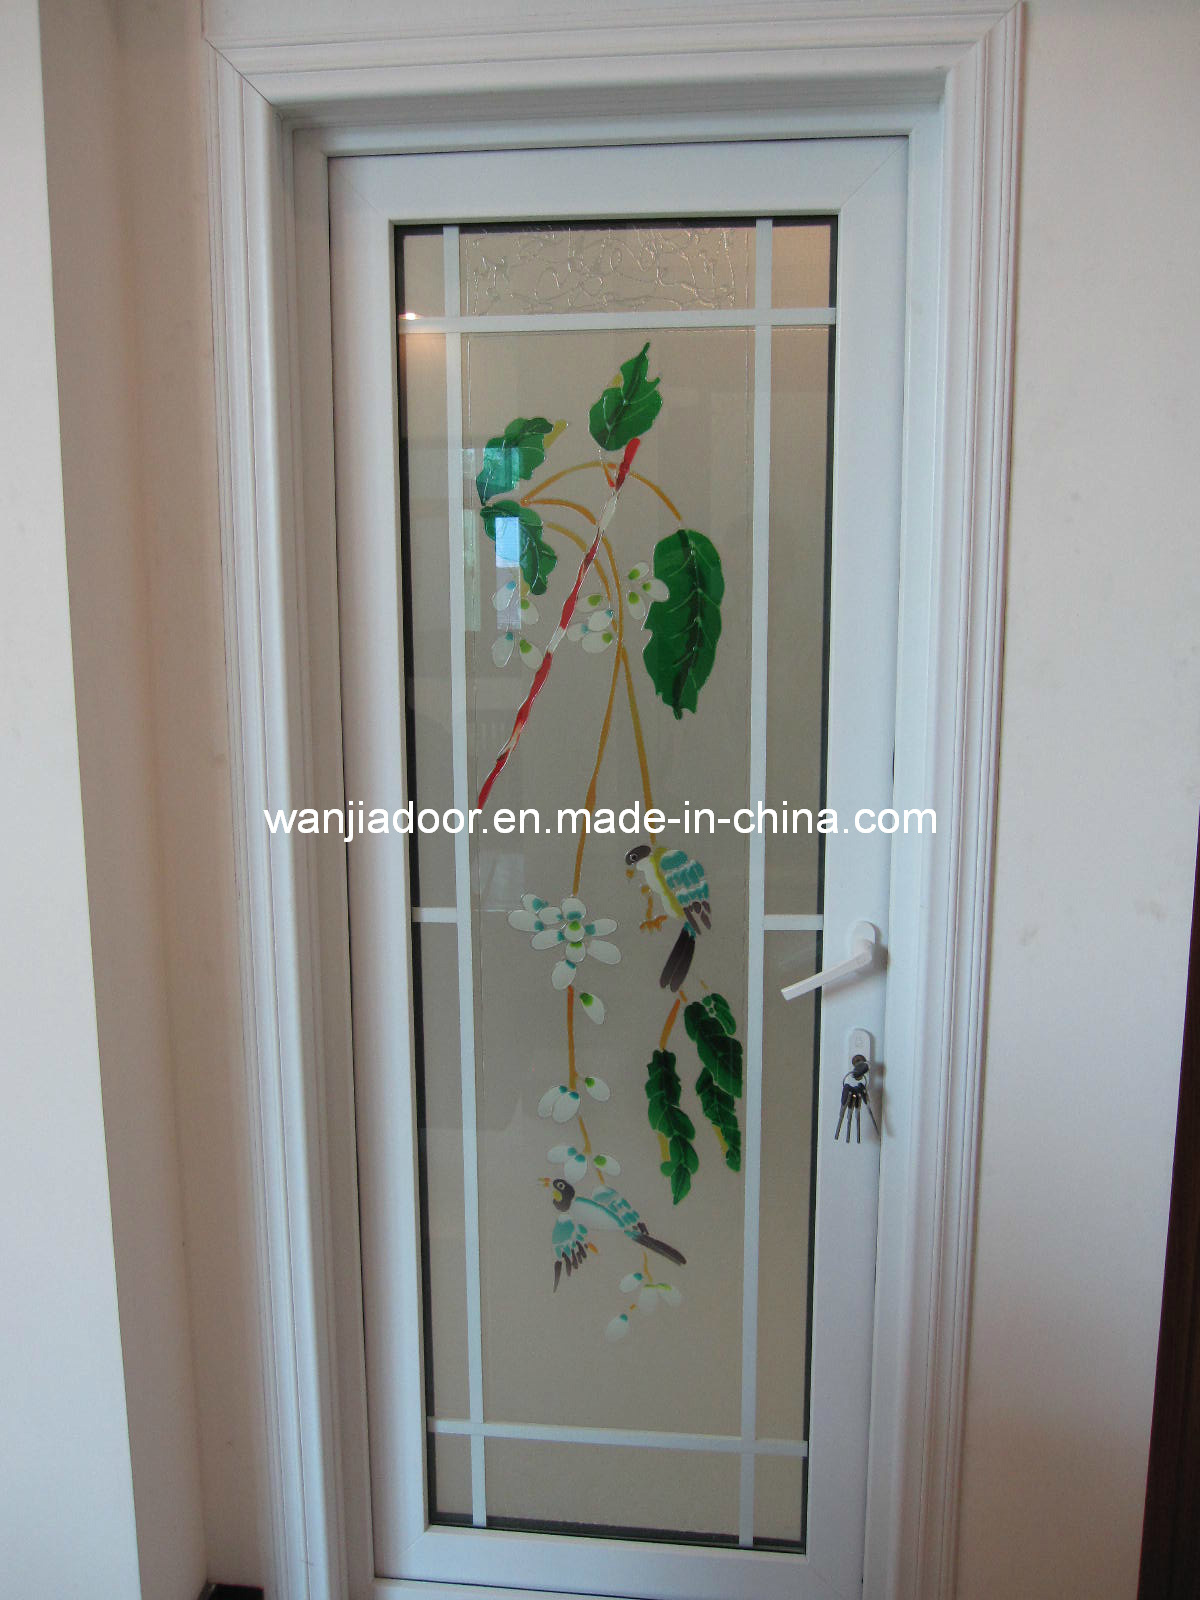 China Wanjia Pvc Door Wj P D016 Photos Pictures